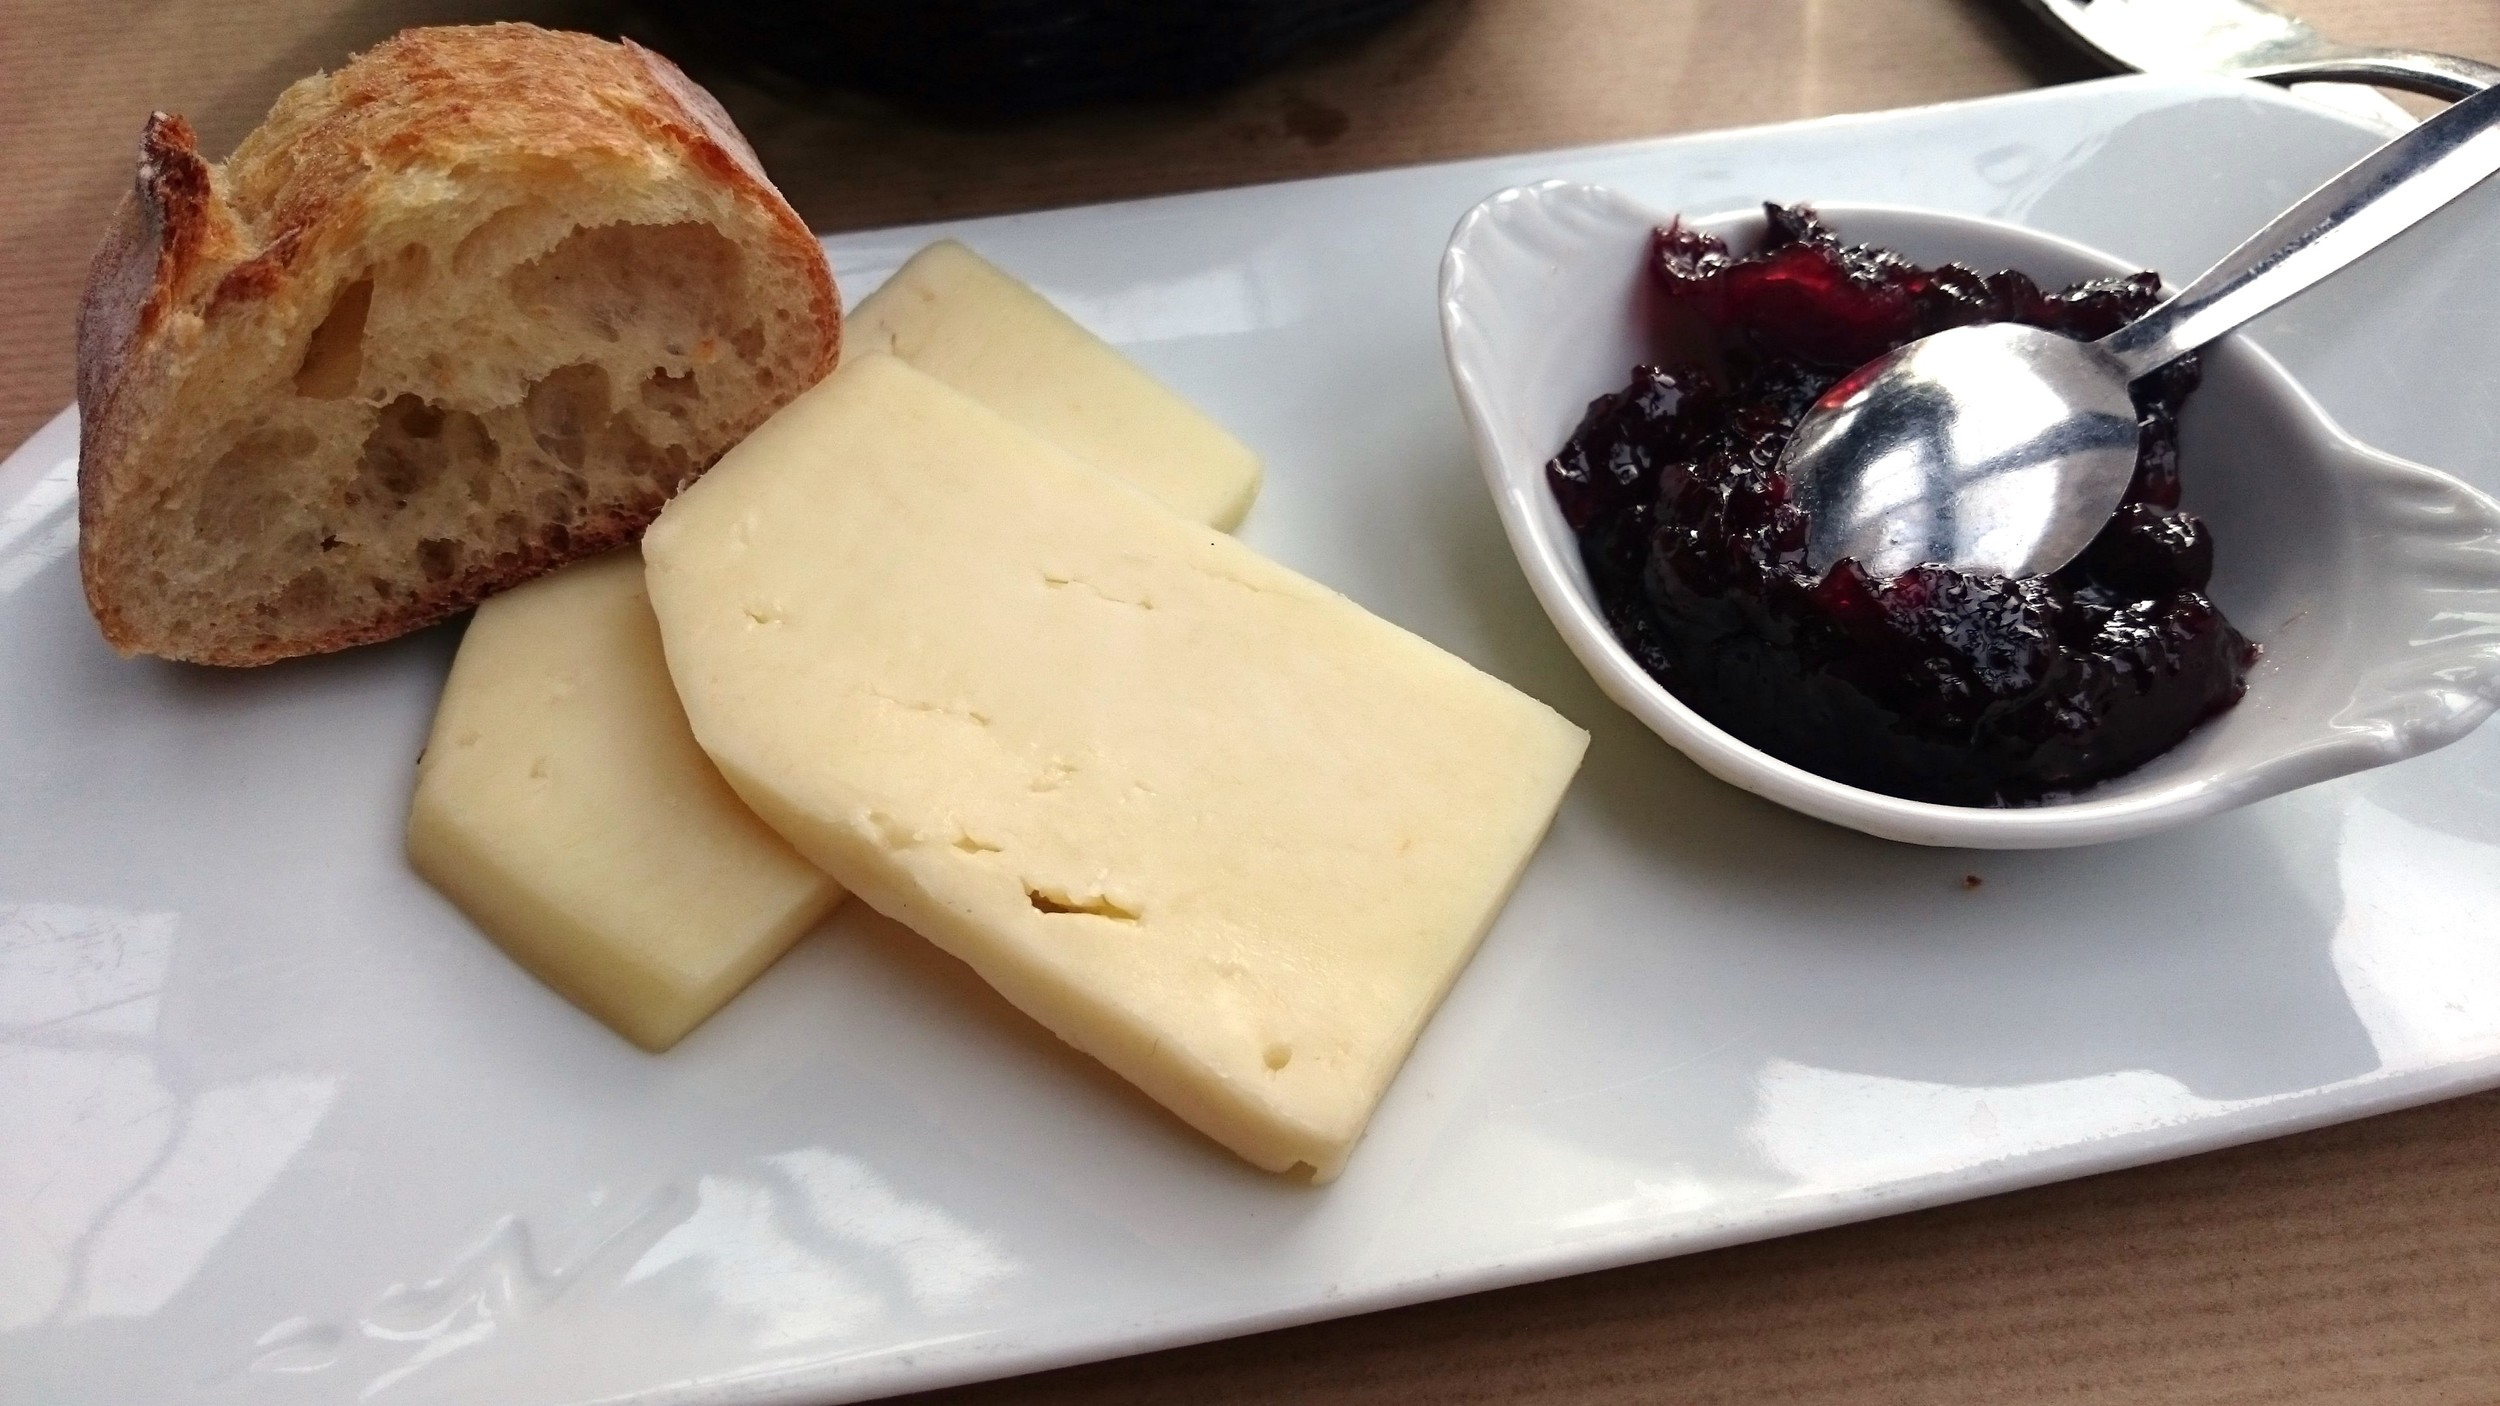 Tomme de brebis , a sheep's cheese from the Southwest of France with the regional condiment of black cherry jam.